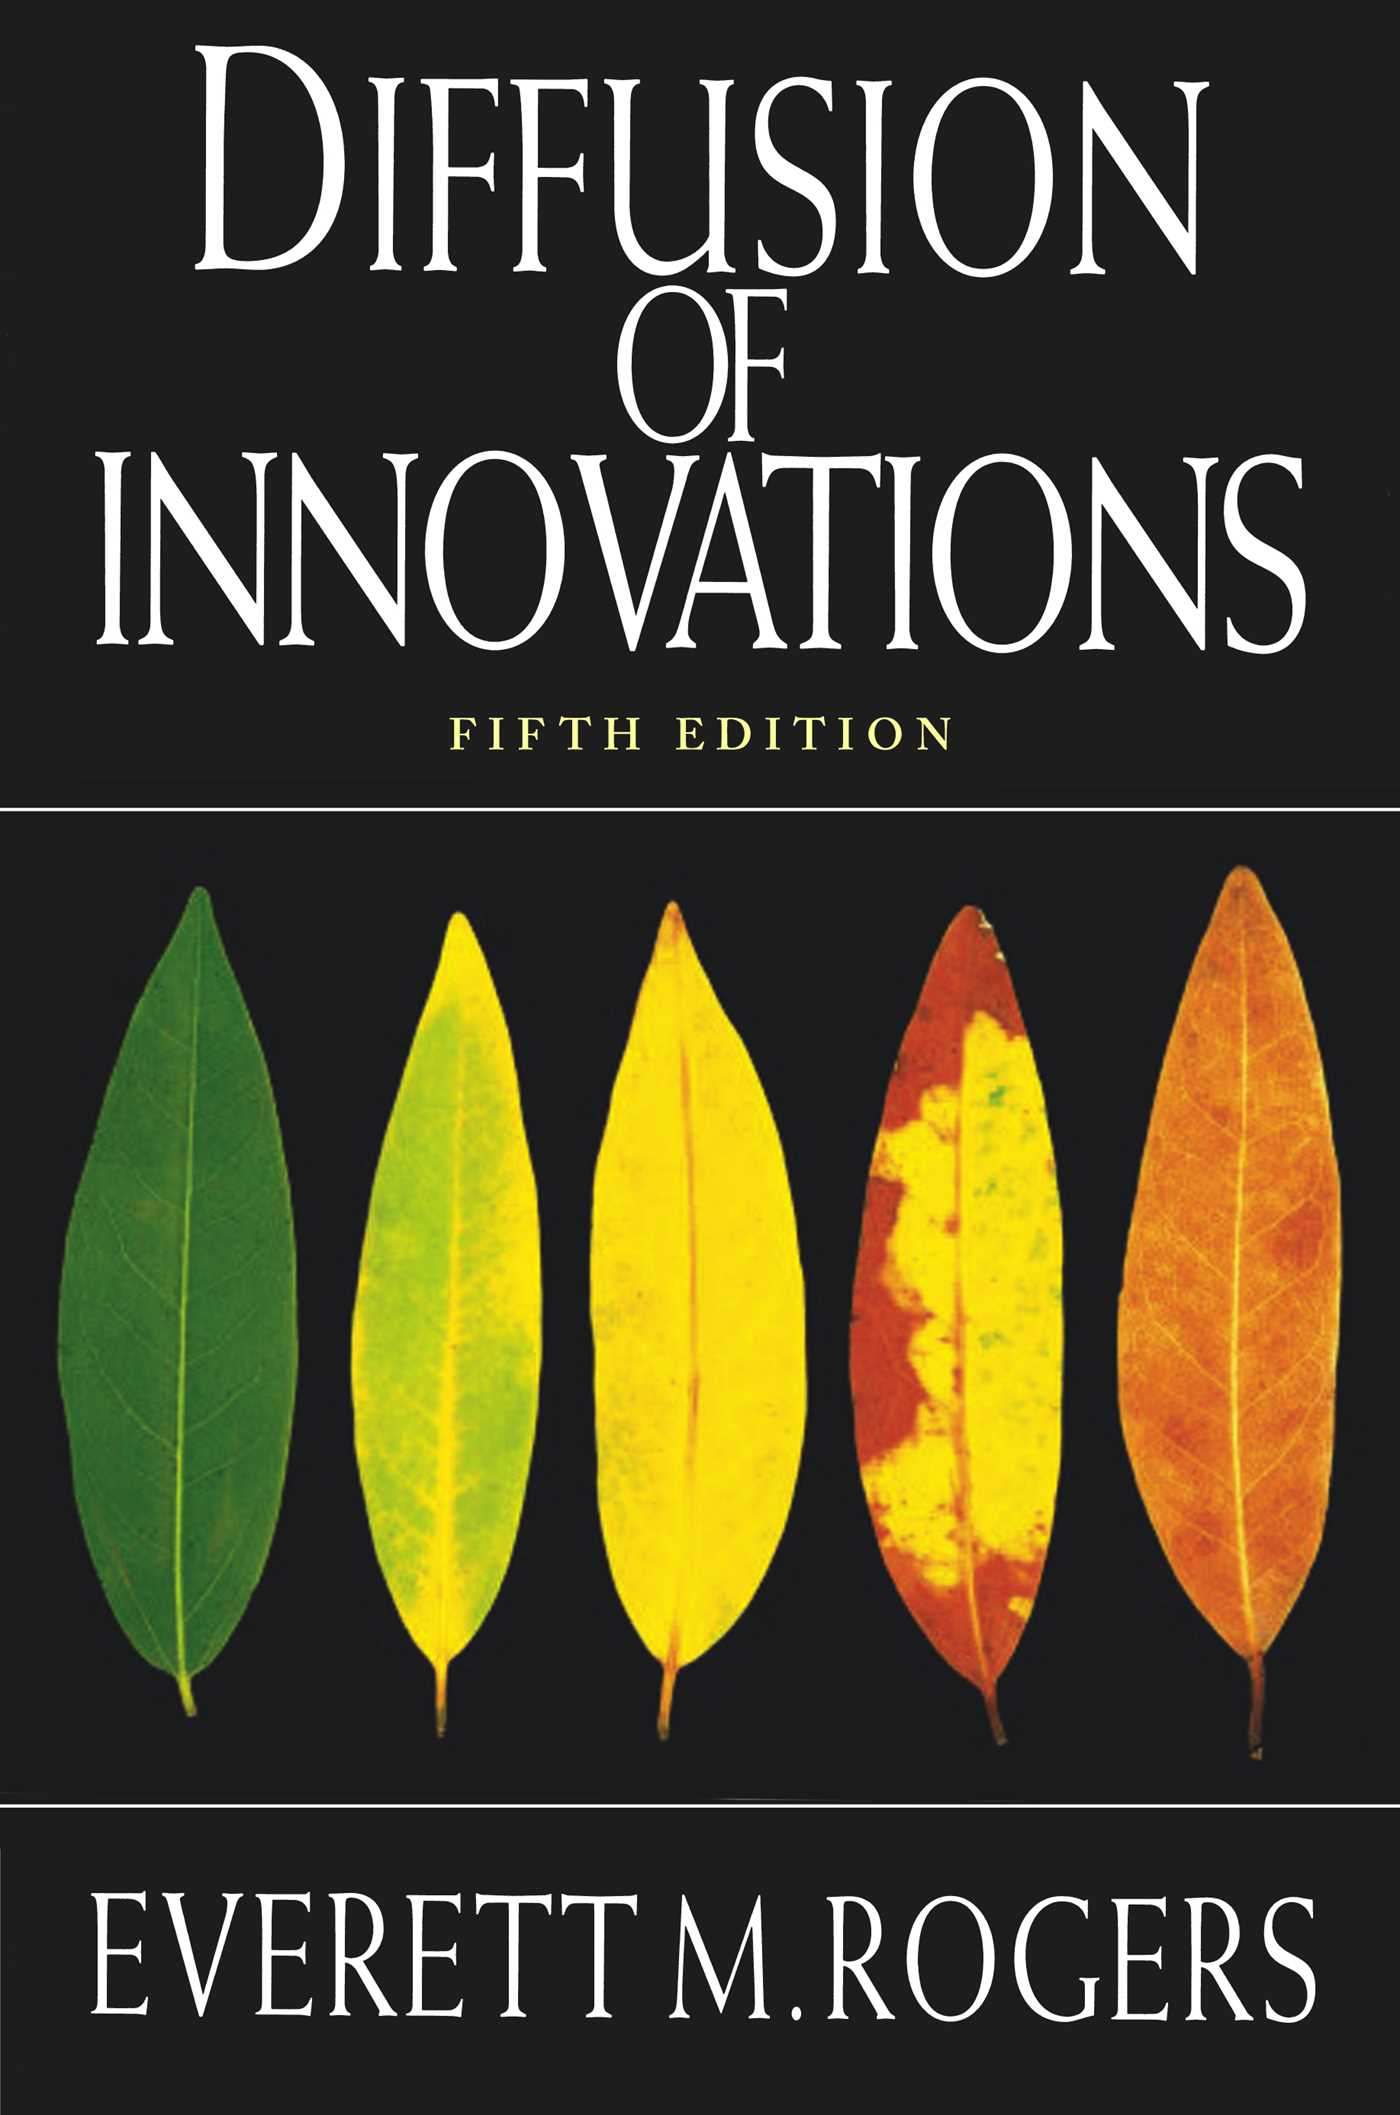 Diffusion of innovations 5th edition 9780743258234 hr